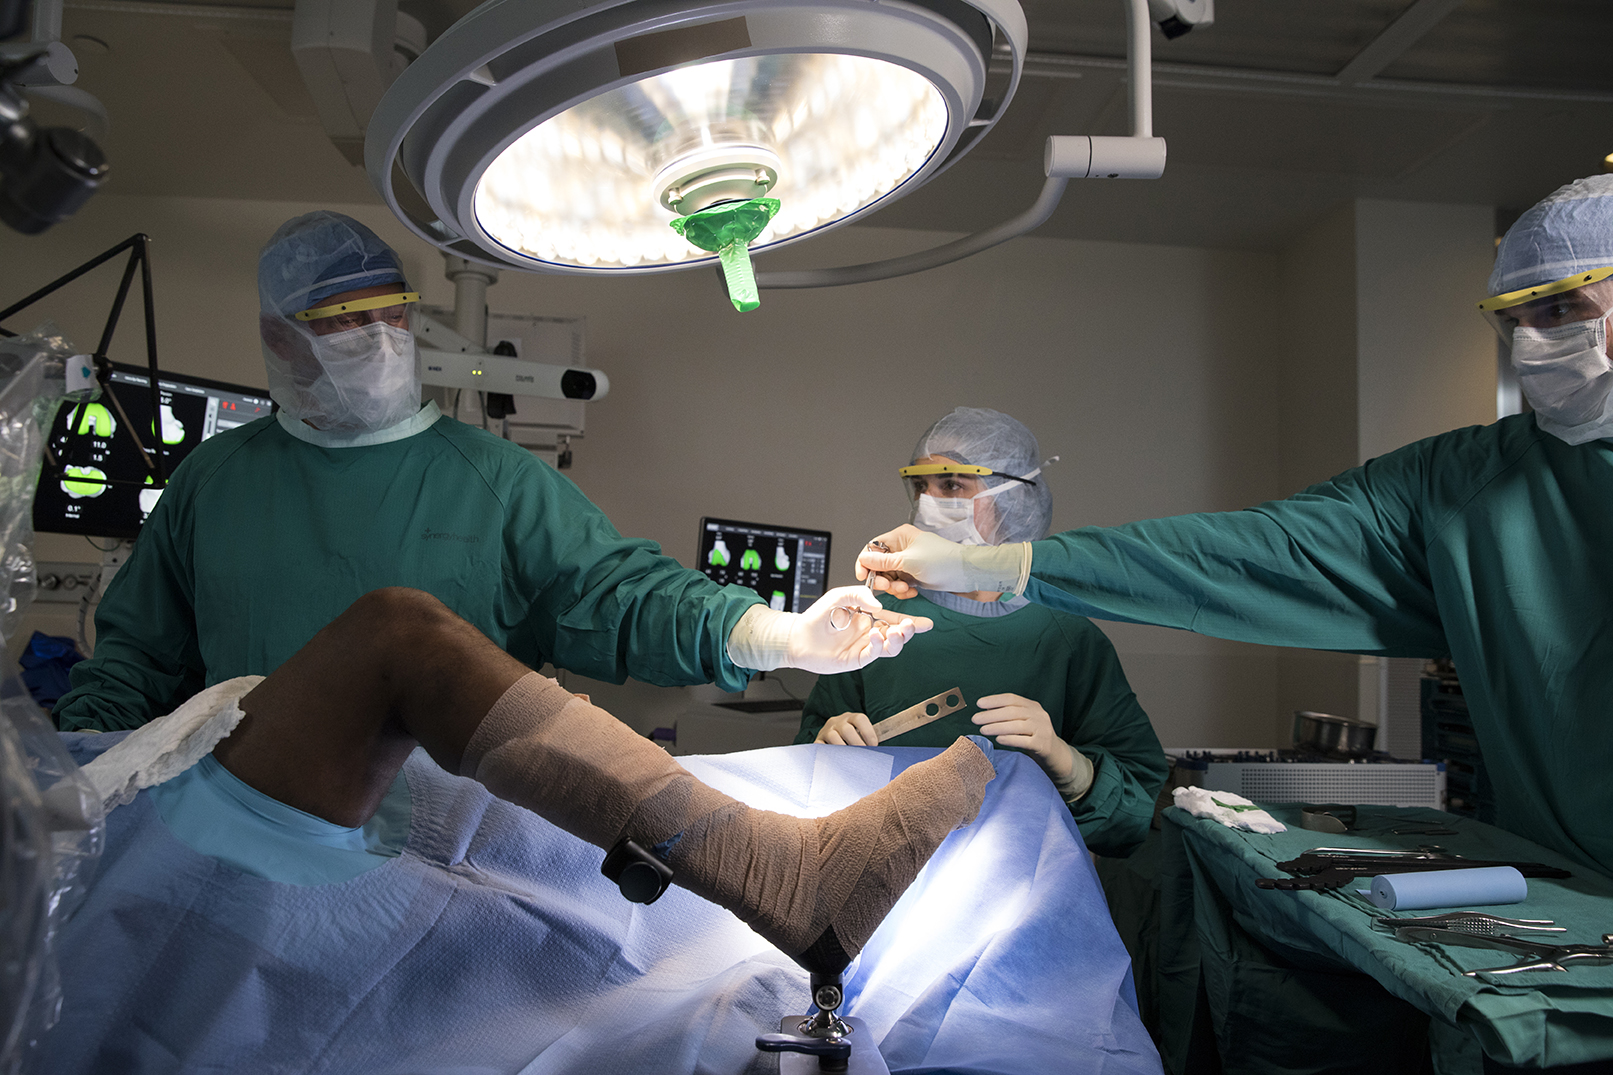 Surgeons operate on ACL patient